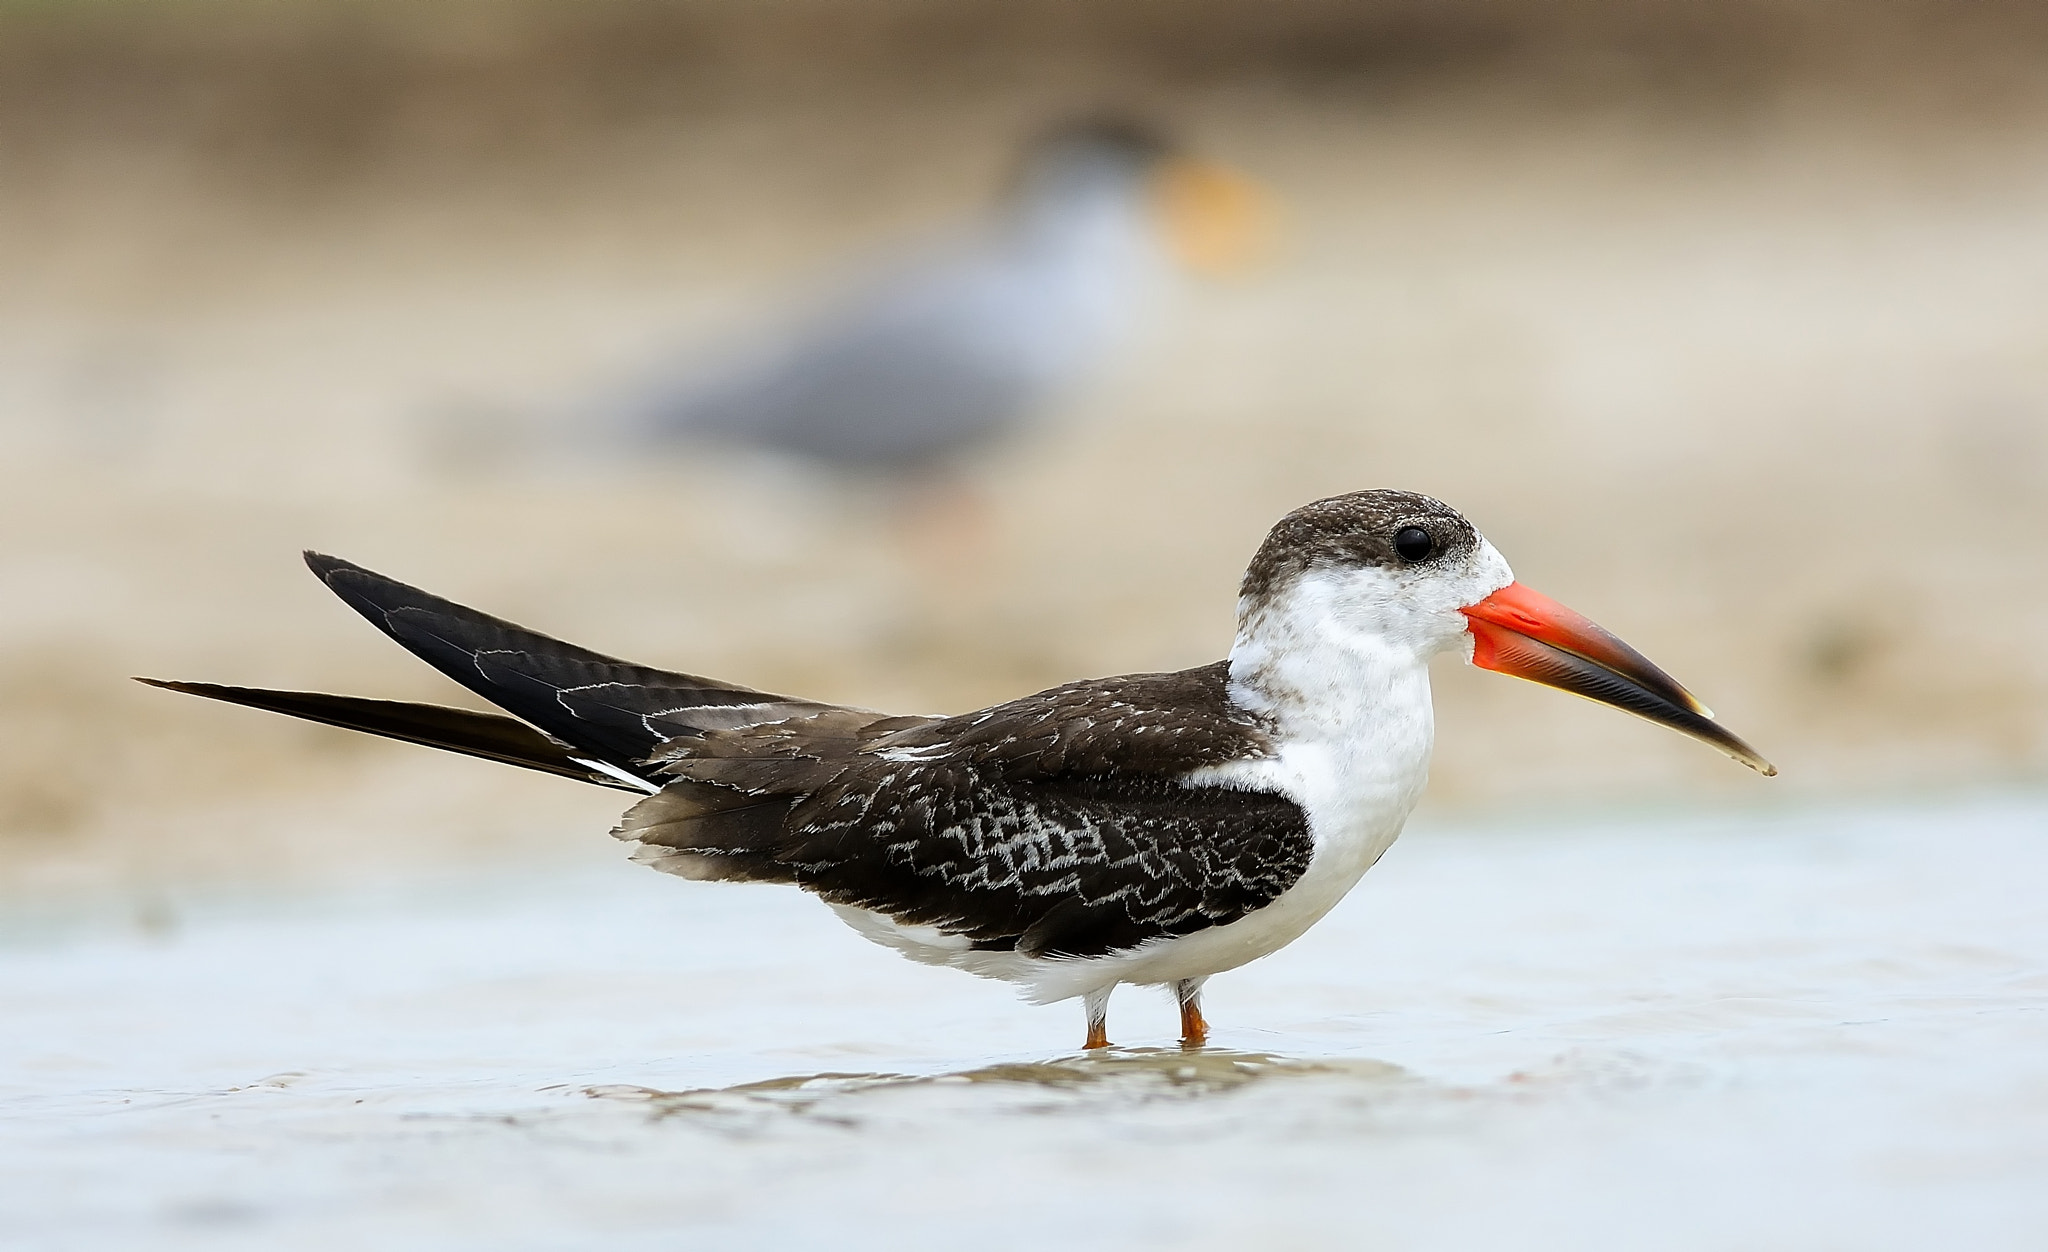 Photograph Indian Skimmer by Sunil Kini on 500px